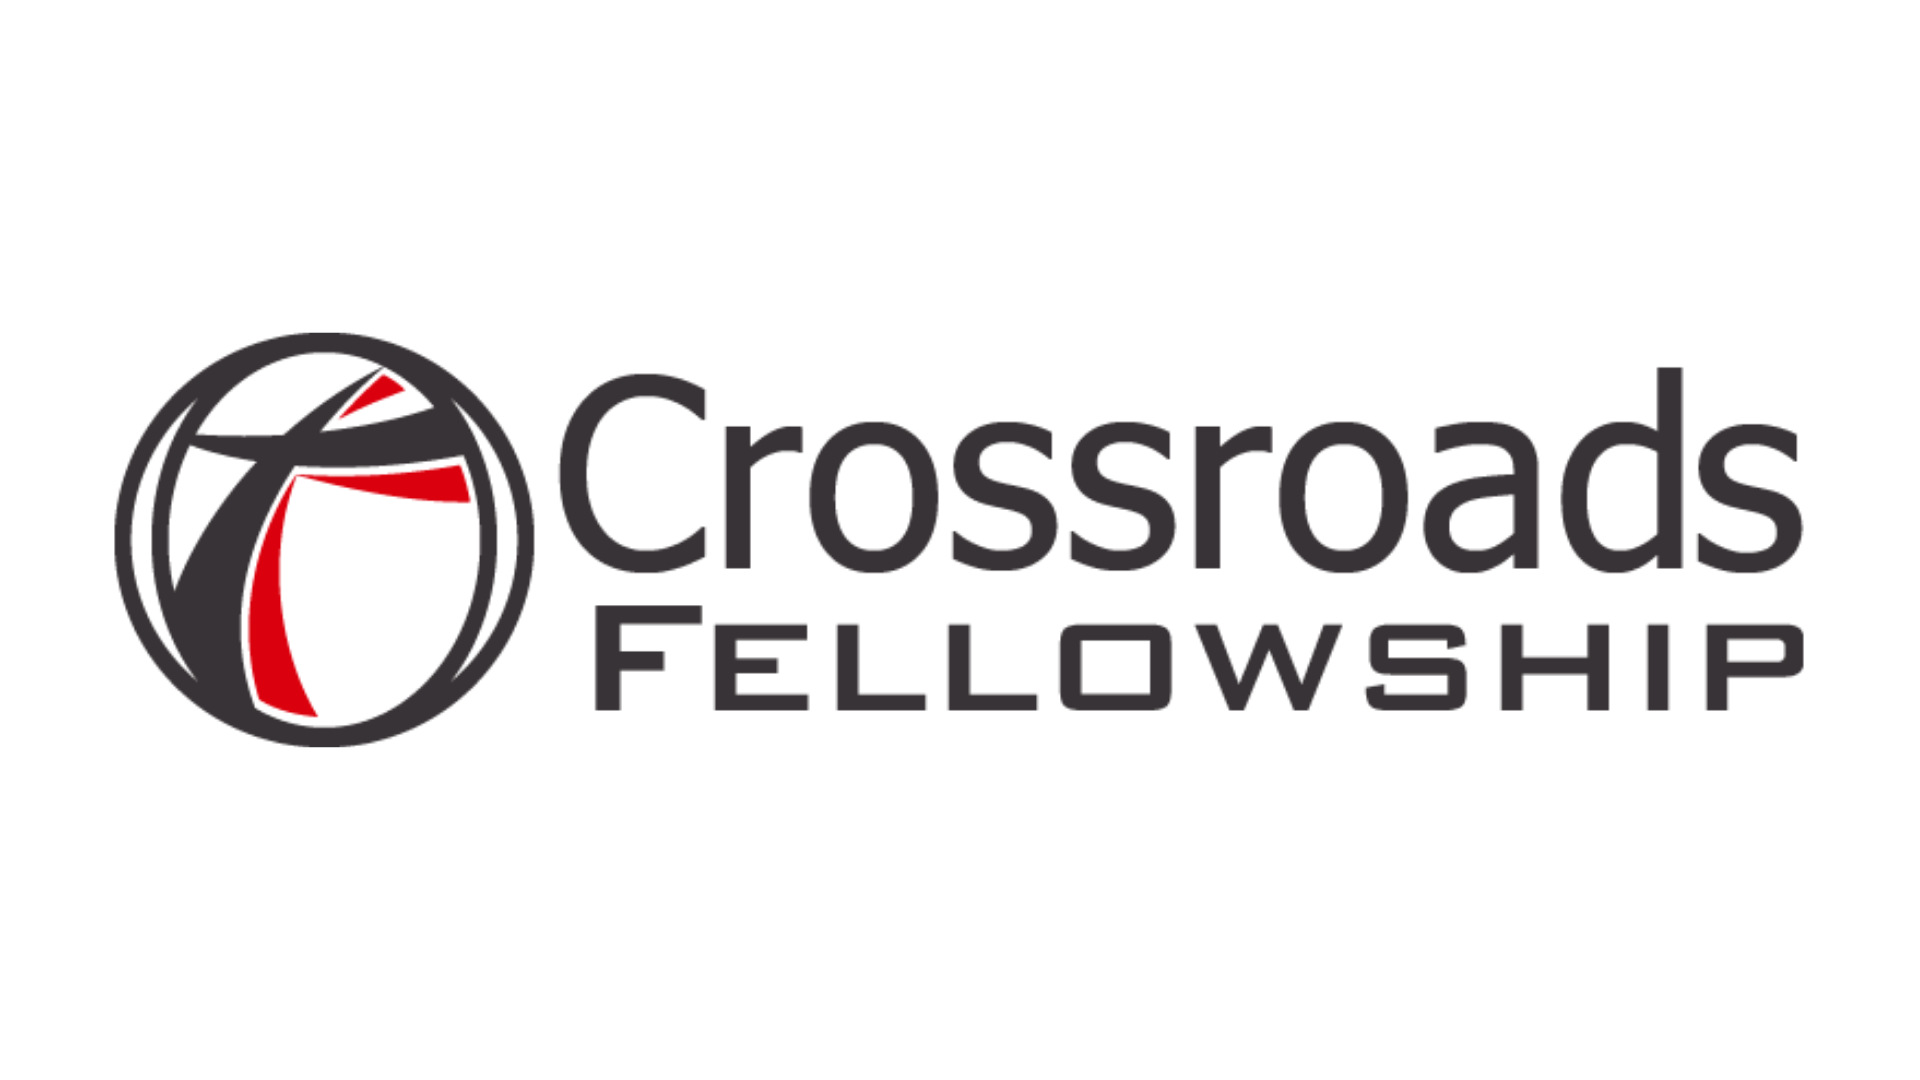 Crossroads Fellowship of The Christian and Missionary Alliance